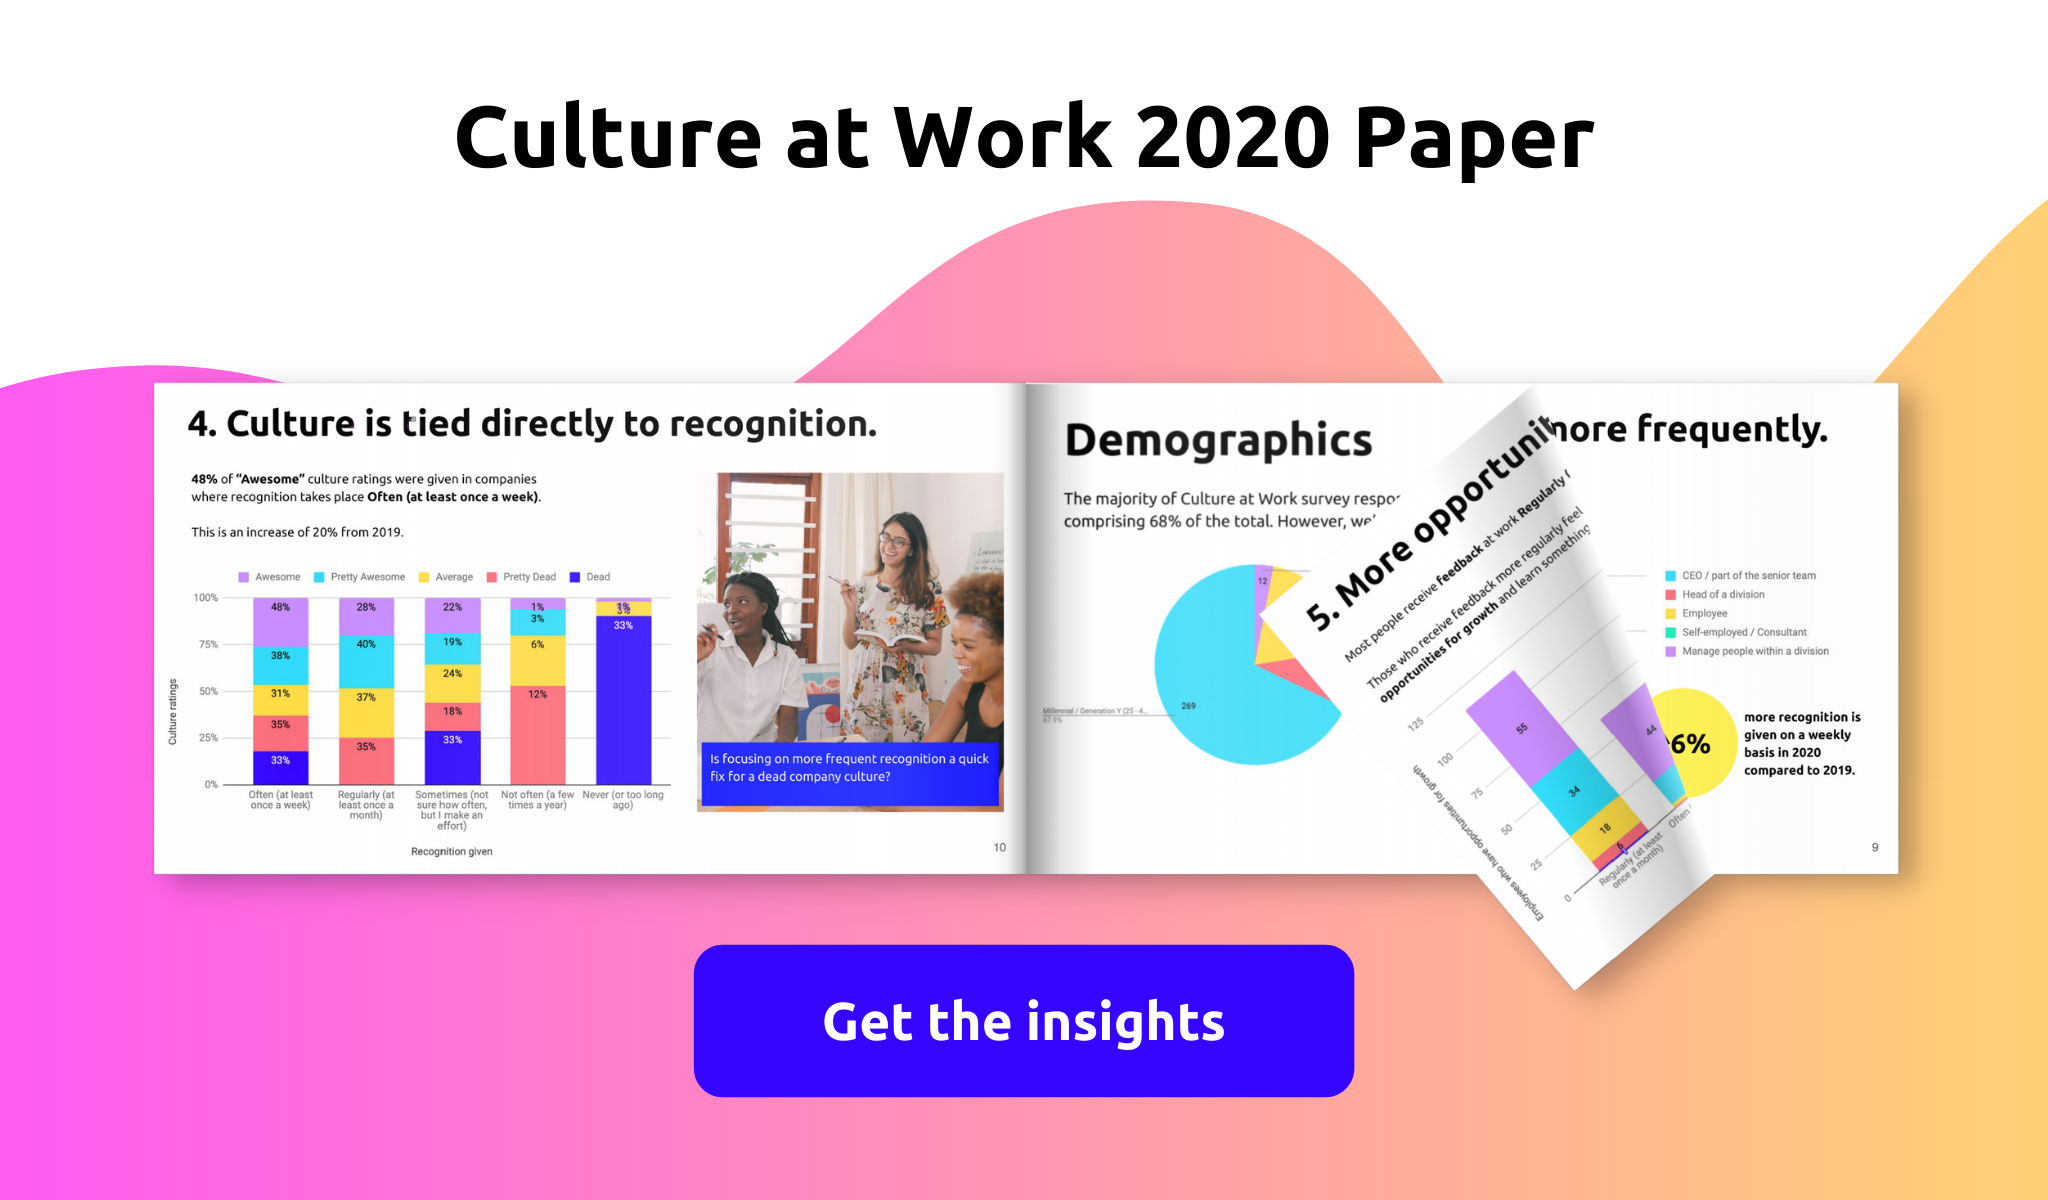 Culture at Work 2020